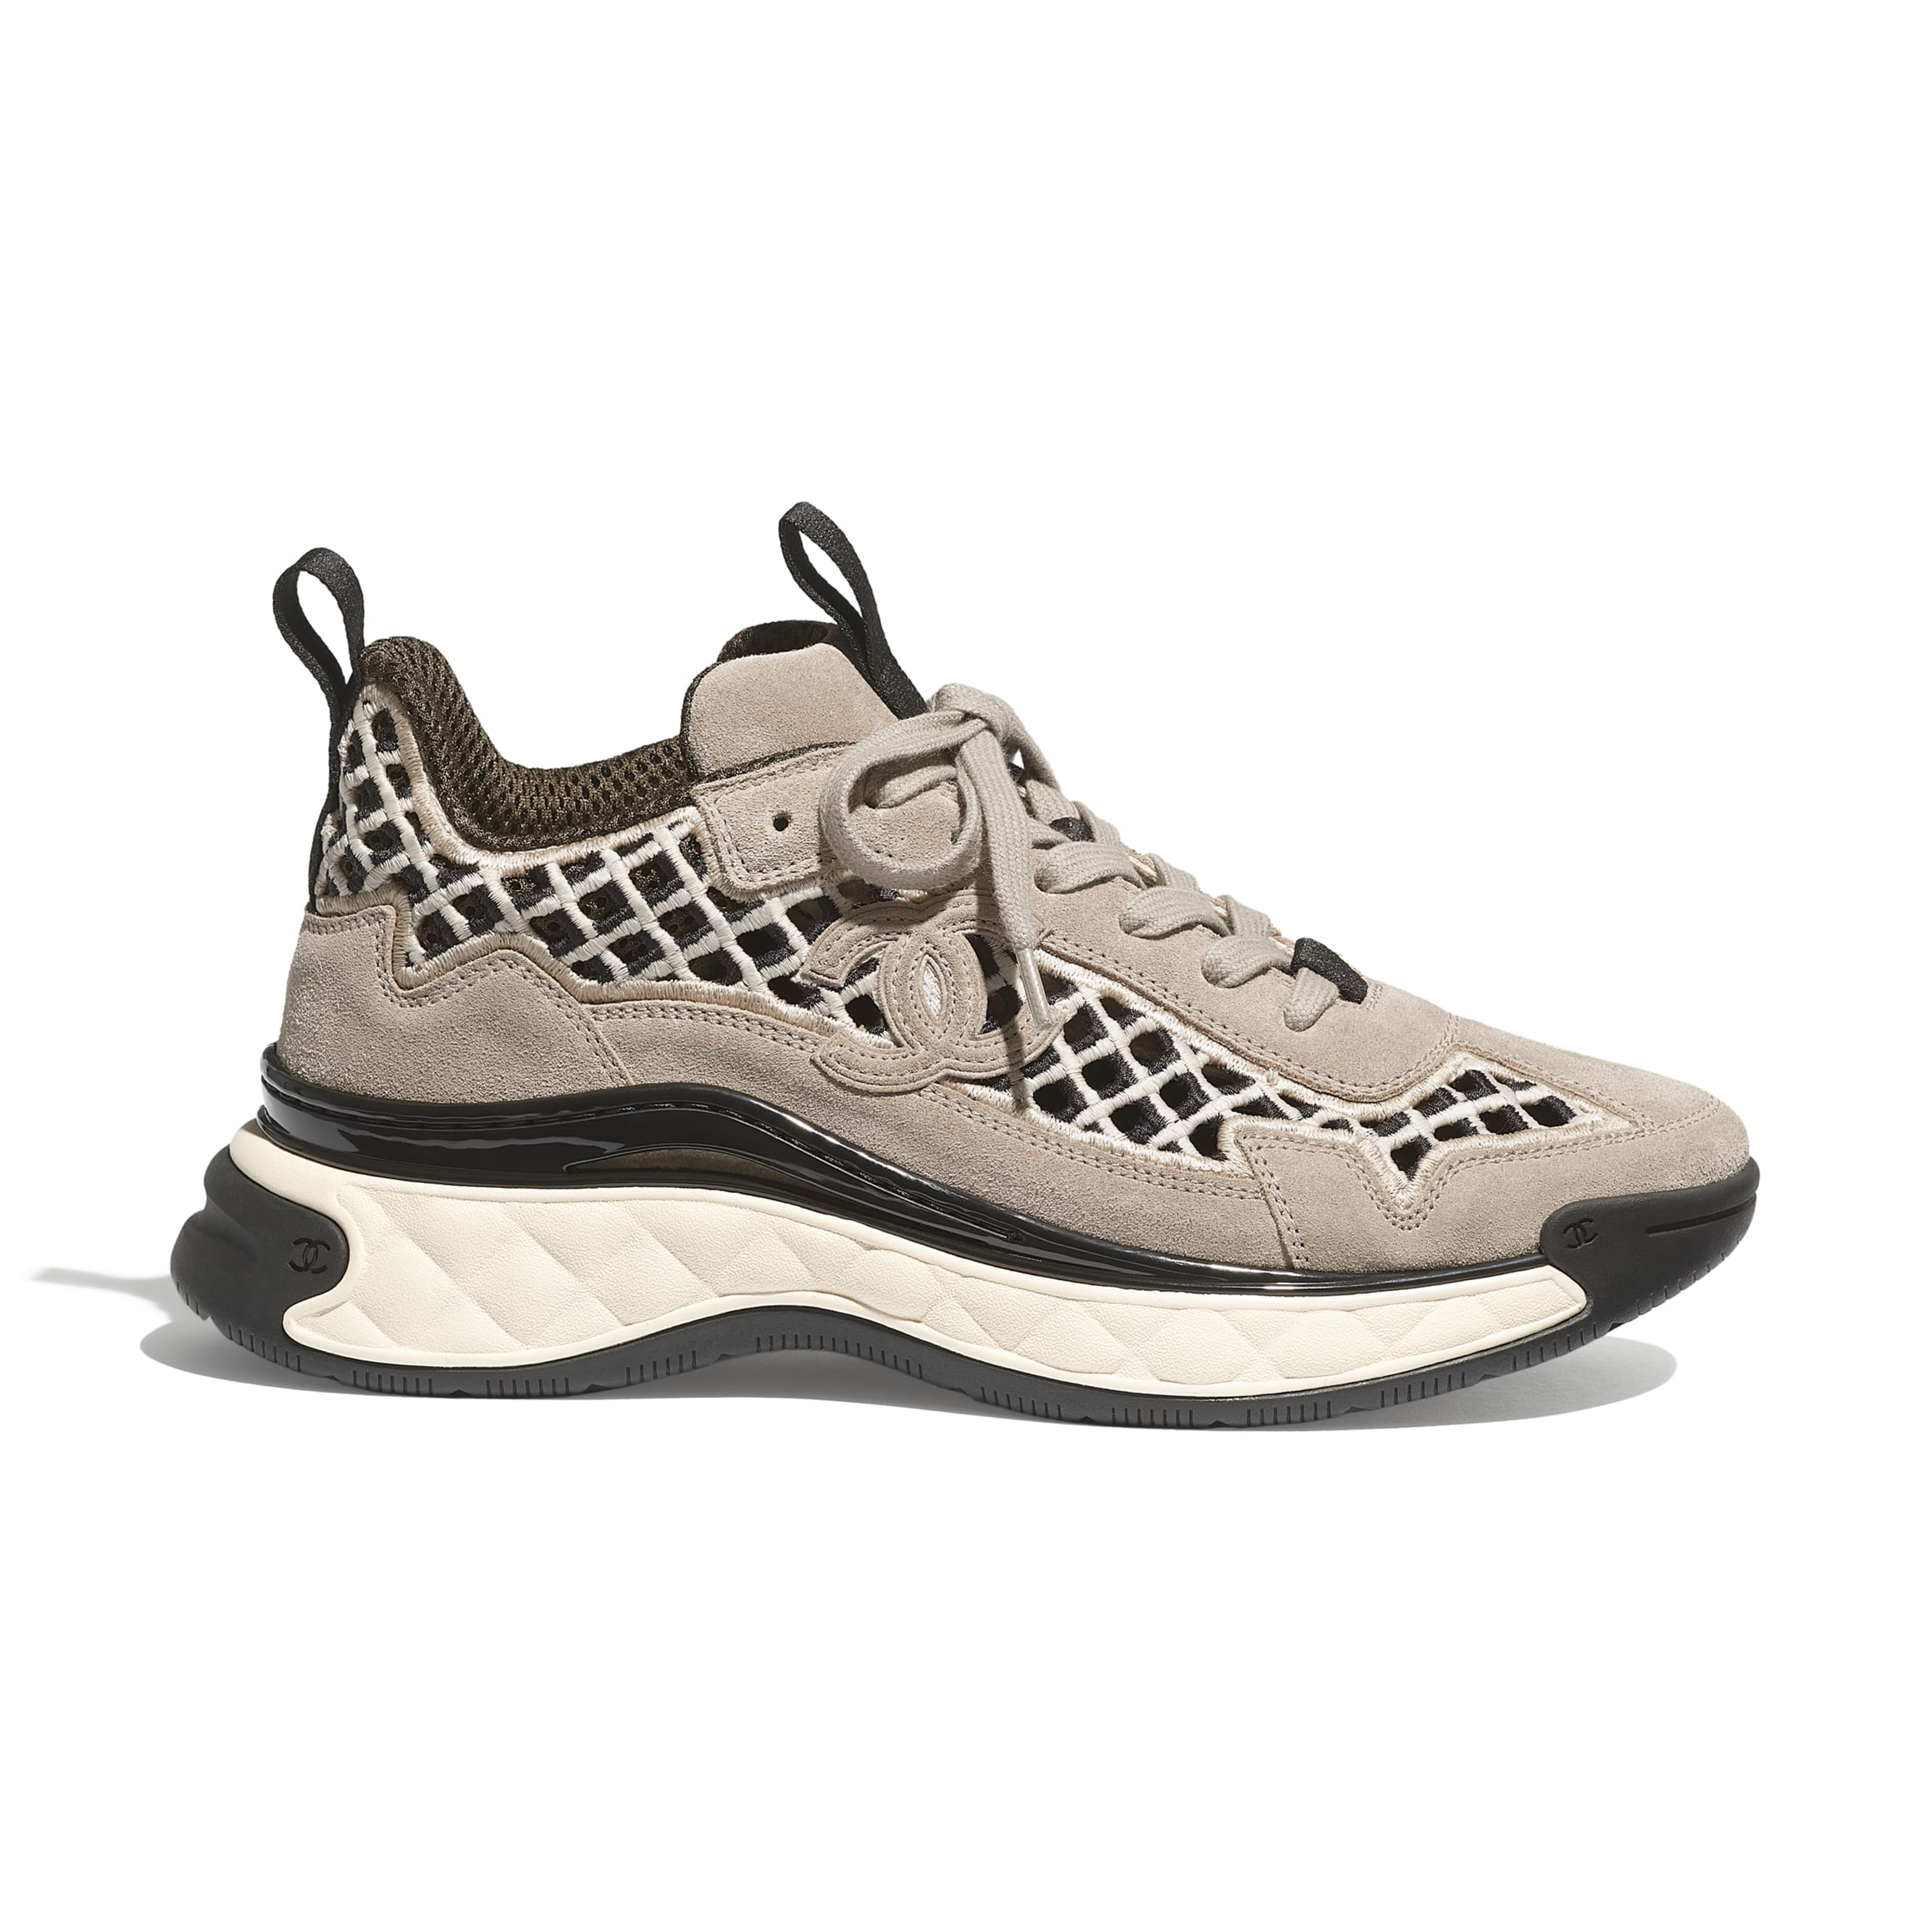 Trainers - Beige - Suede Calfskin & Embroidery - CHANEL - Default view - see standard sized version